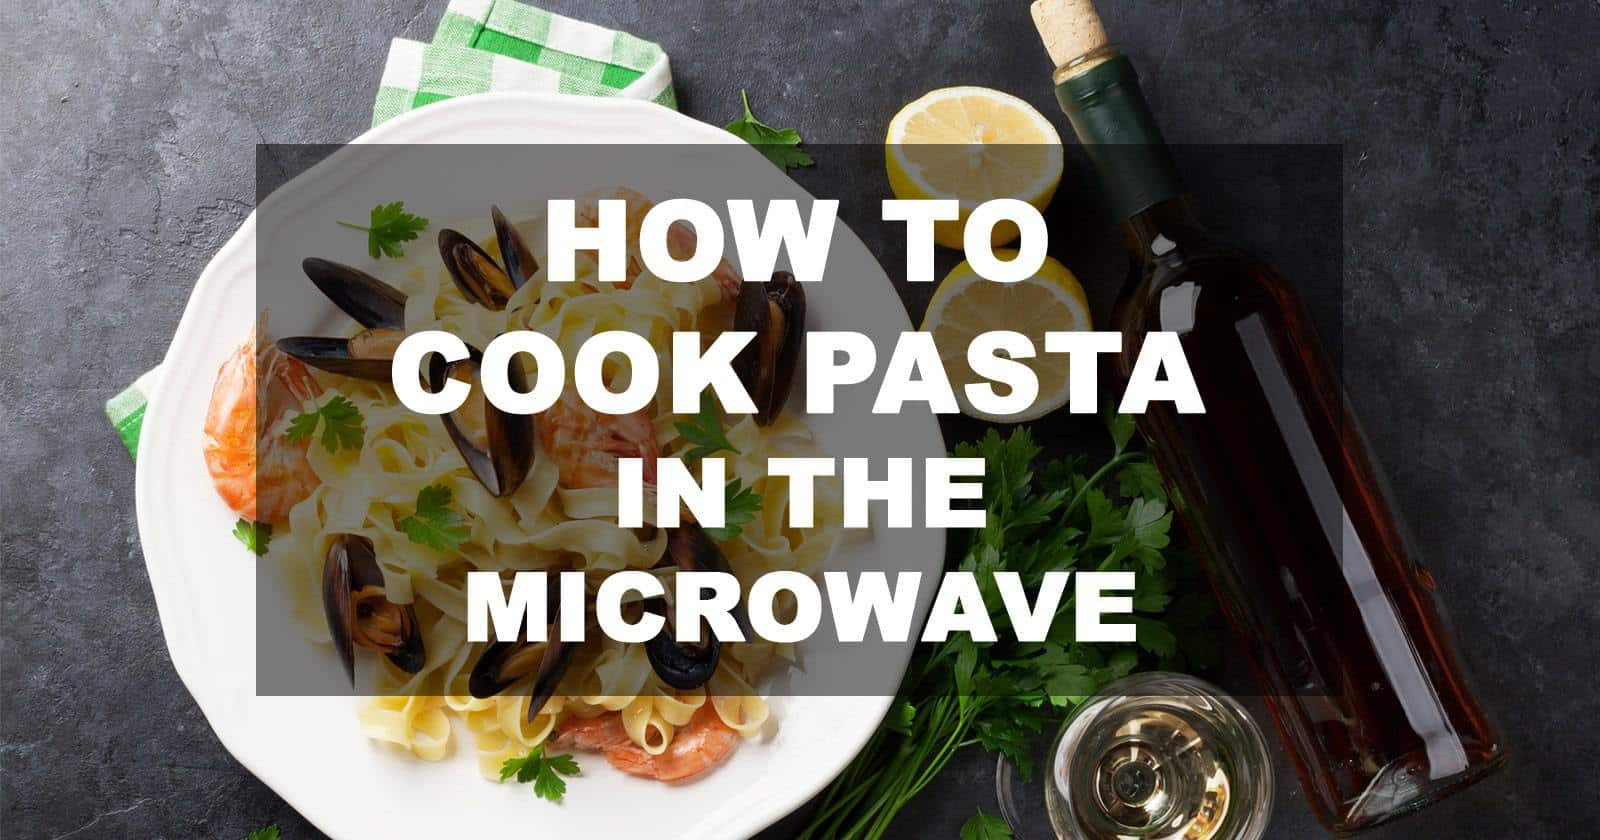 How to Cook Pasta in the Microwave in 6 Easy Steps